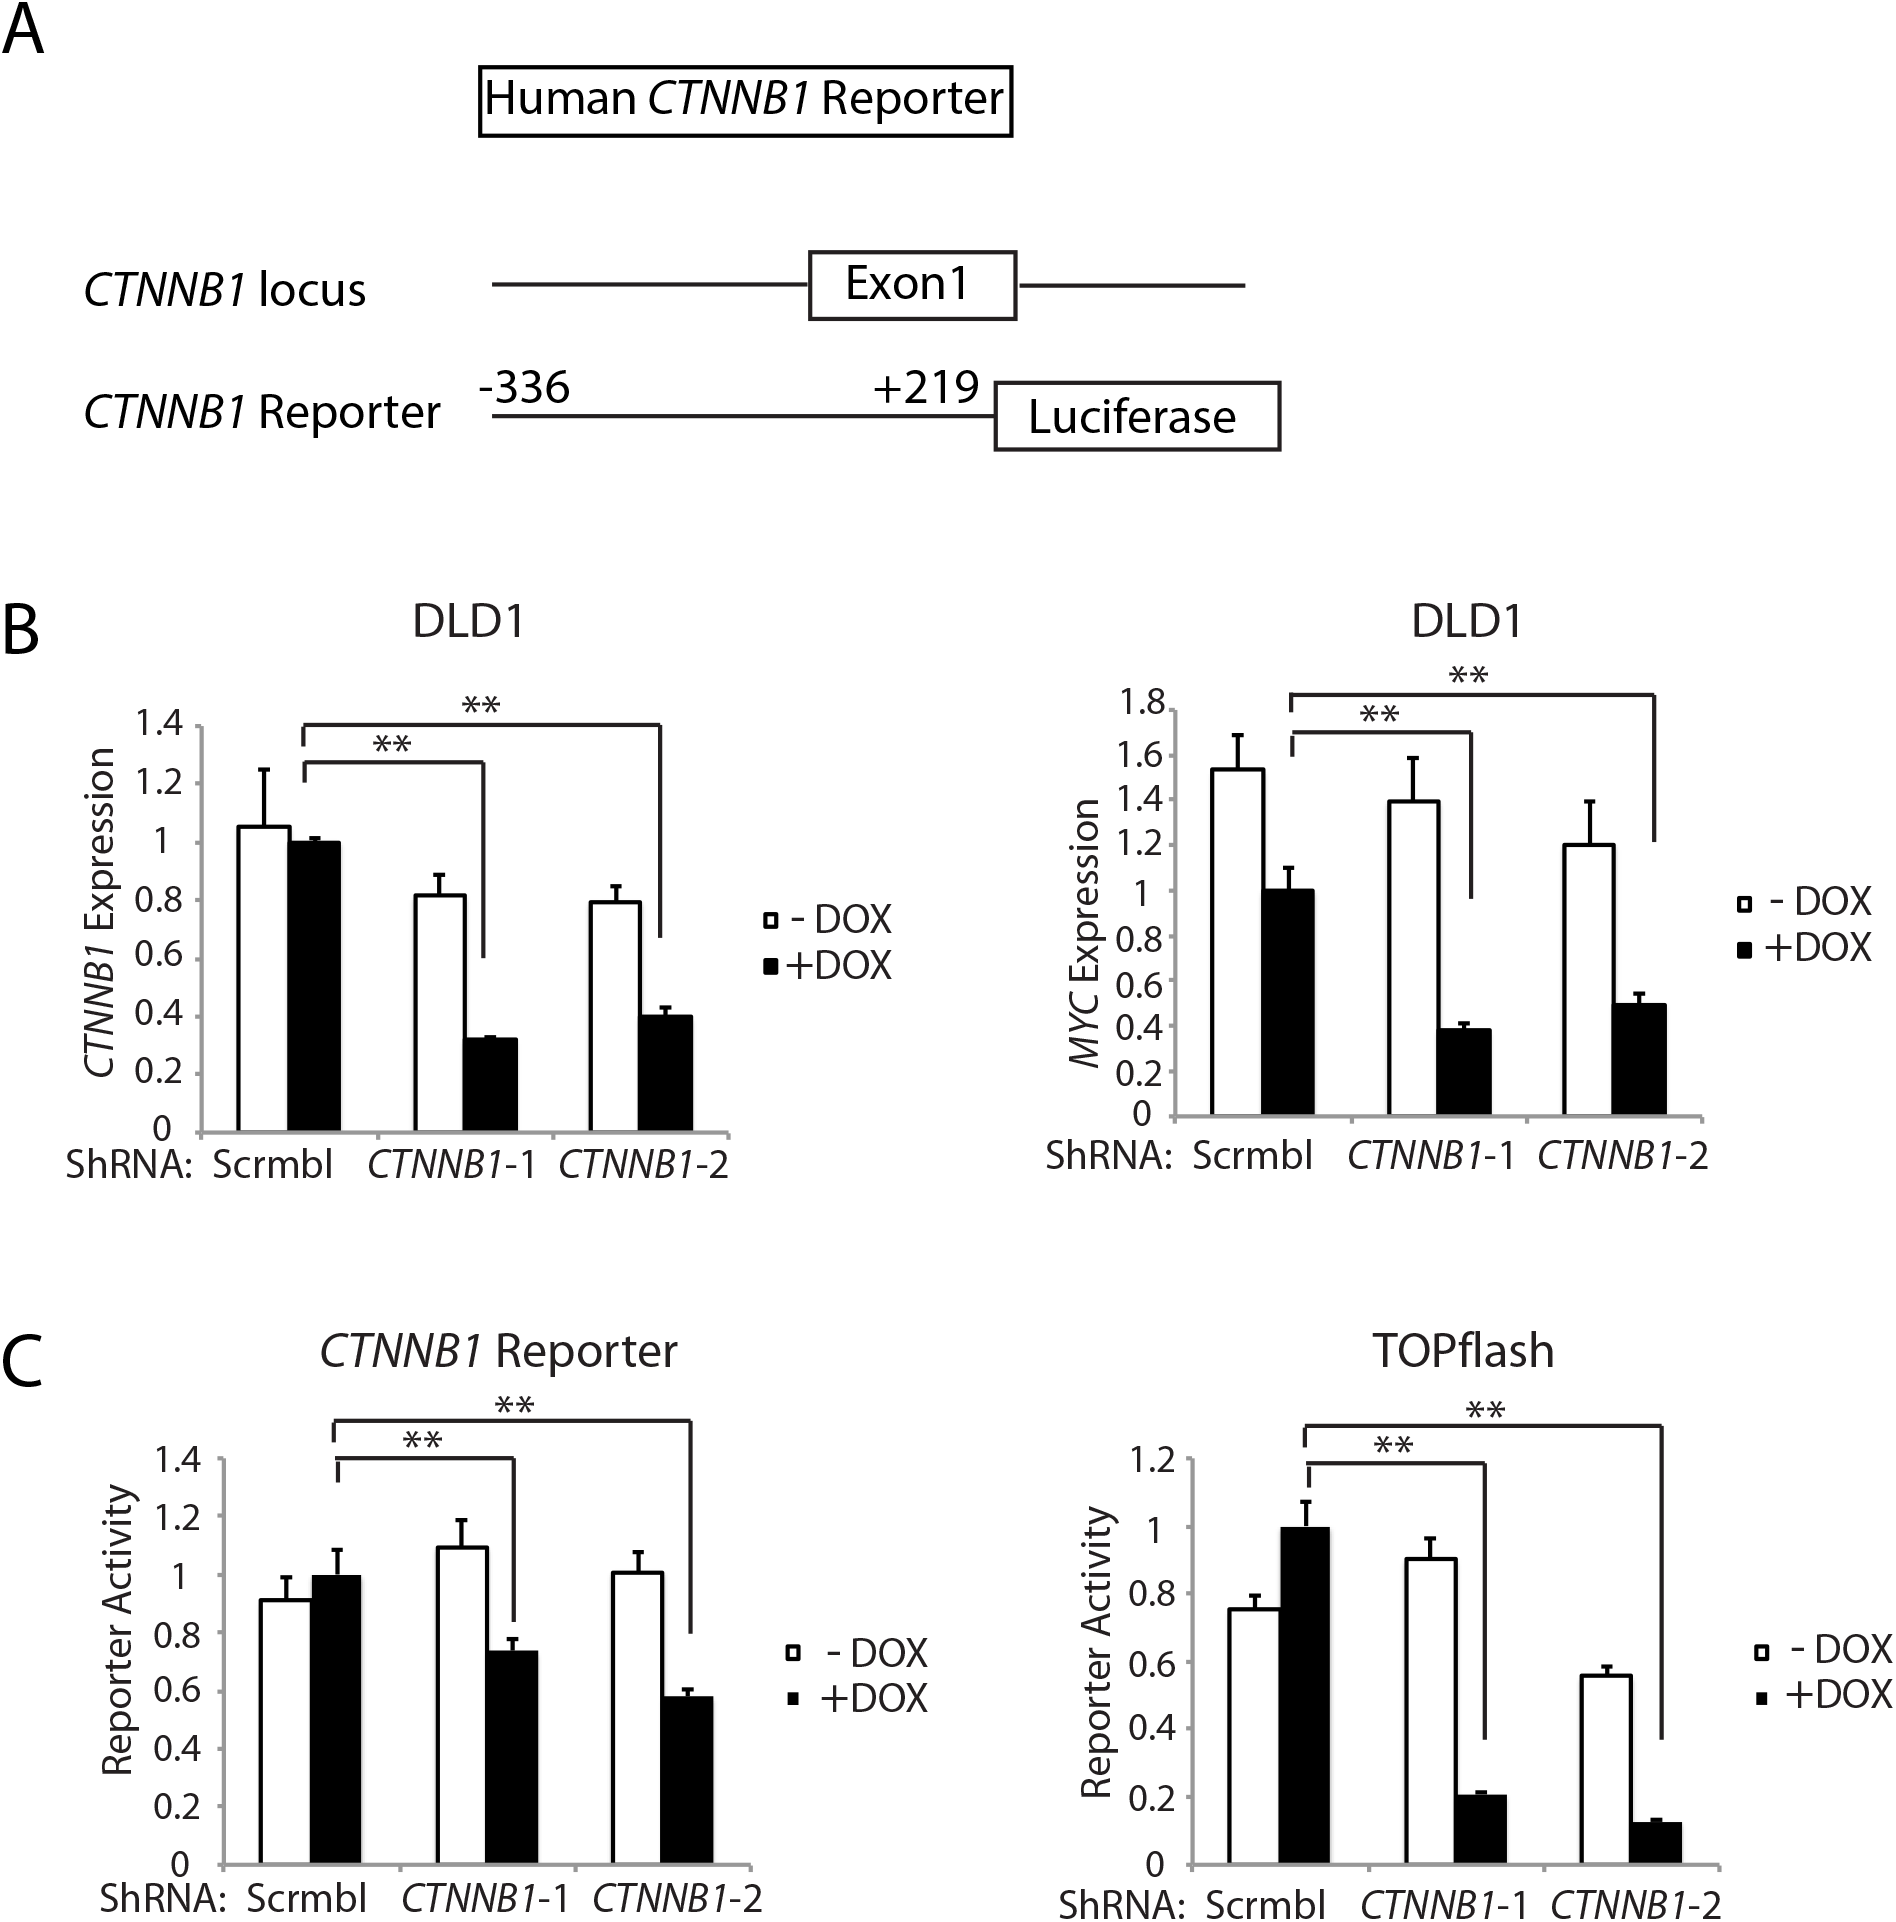 Inhibition of <i>CTNNB1</i> transcript levels affects <i>MYC</i> transcript levels and <i>CTNNB1</i> reporter gene activity in human DLD1 colon cancer cells.